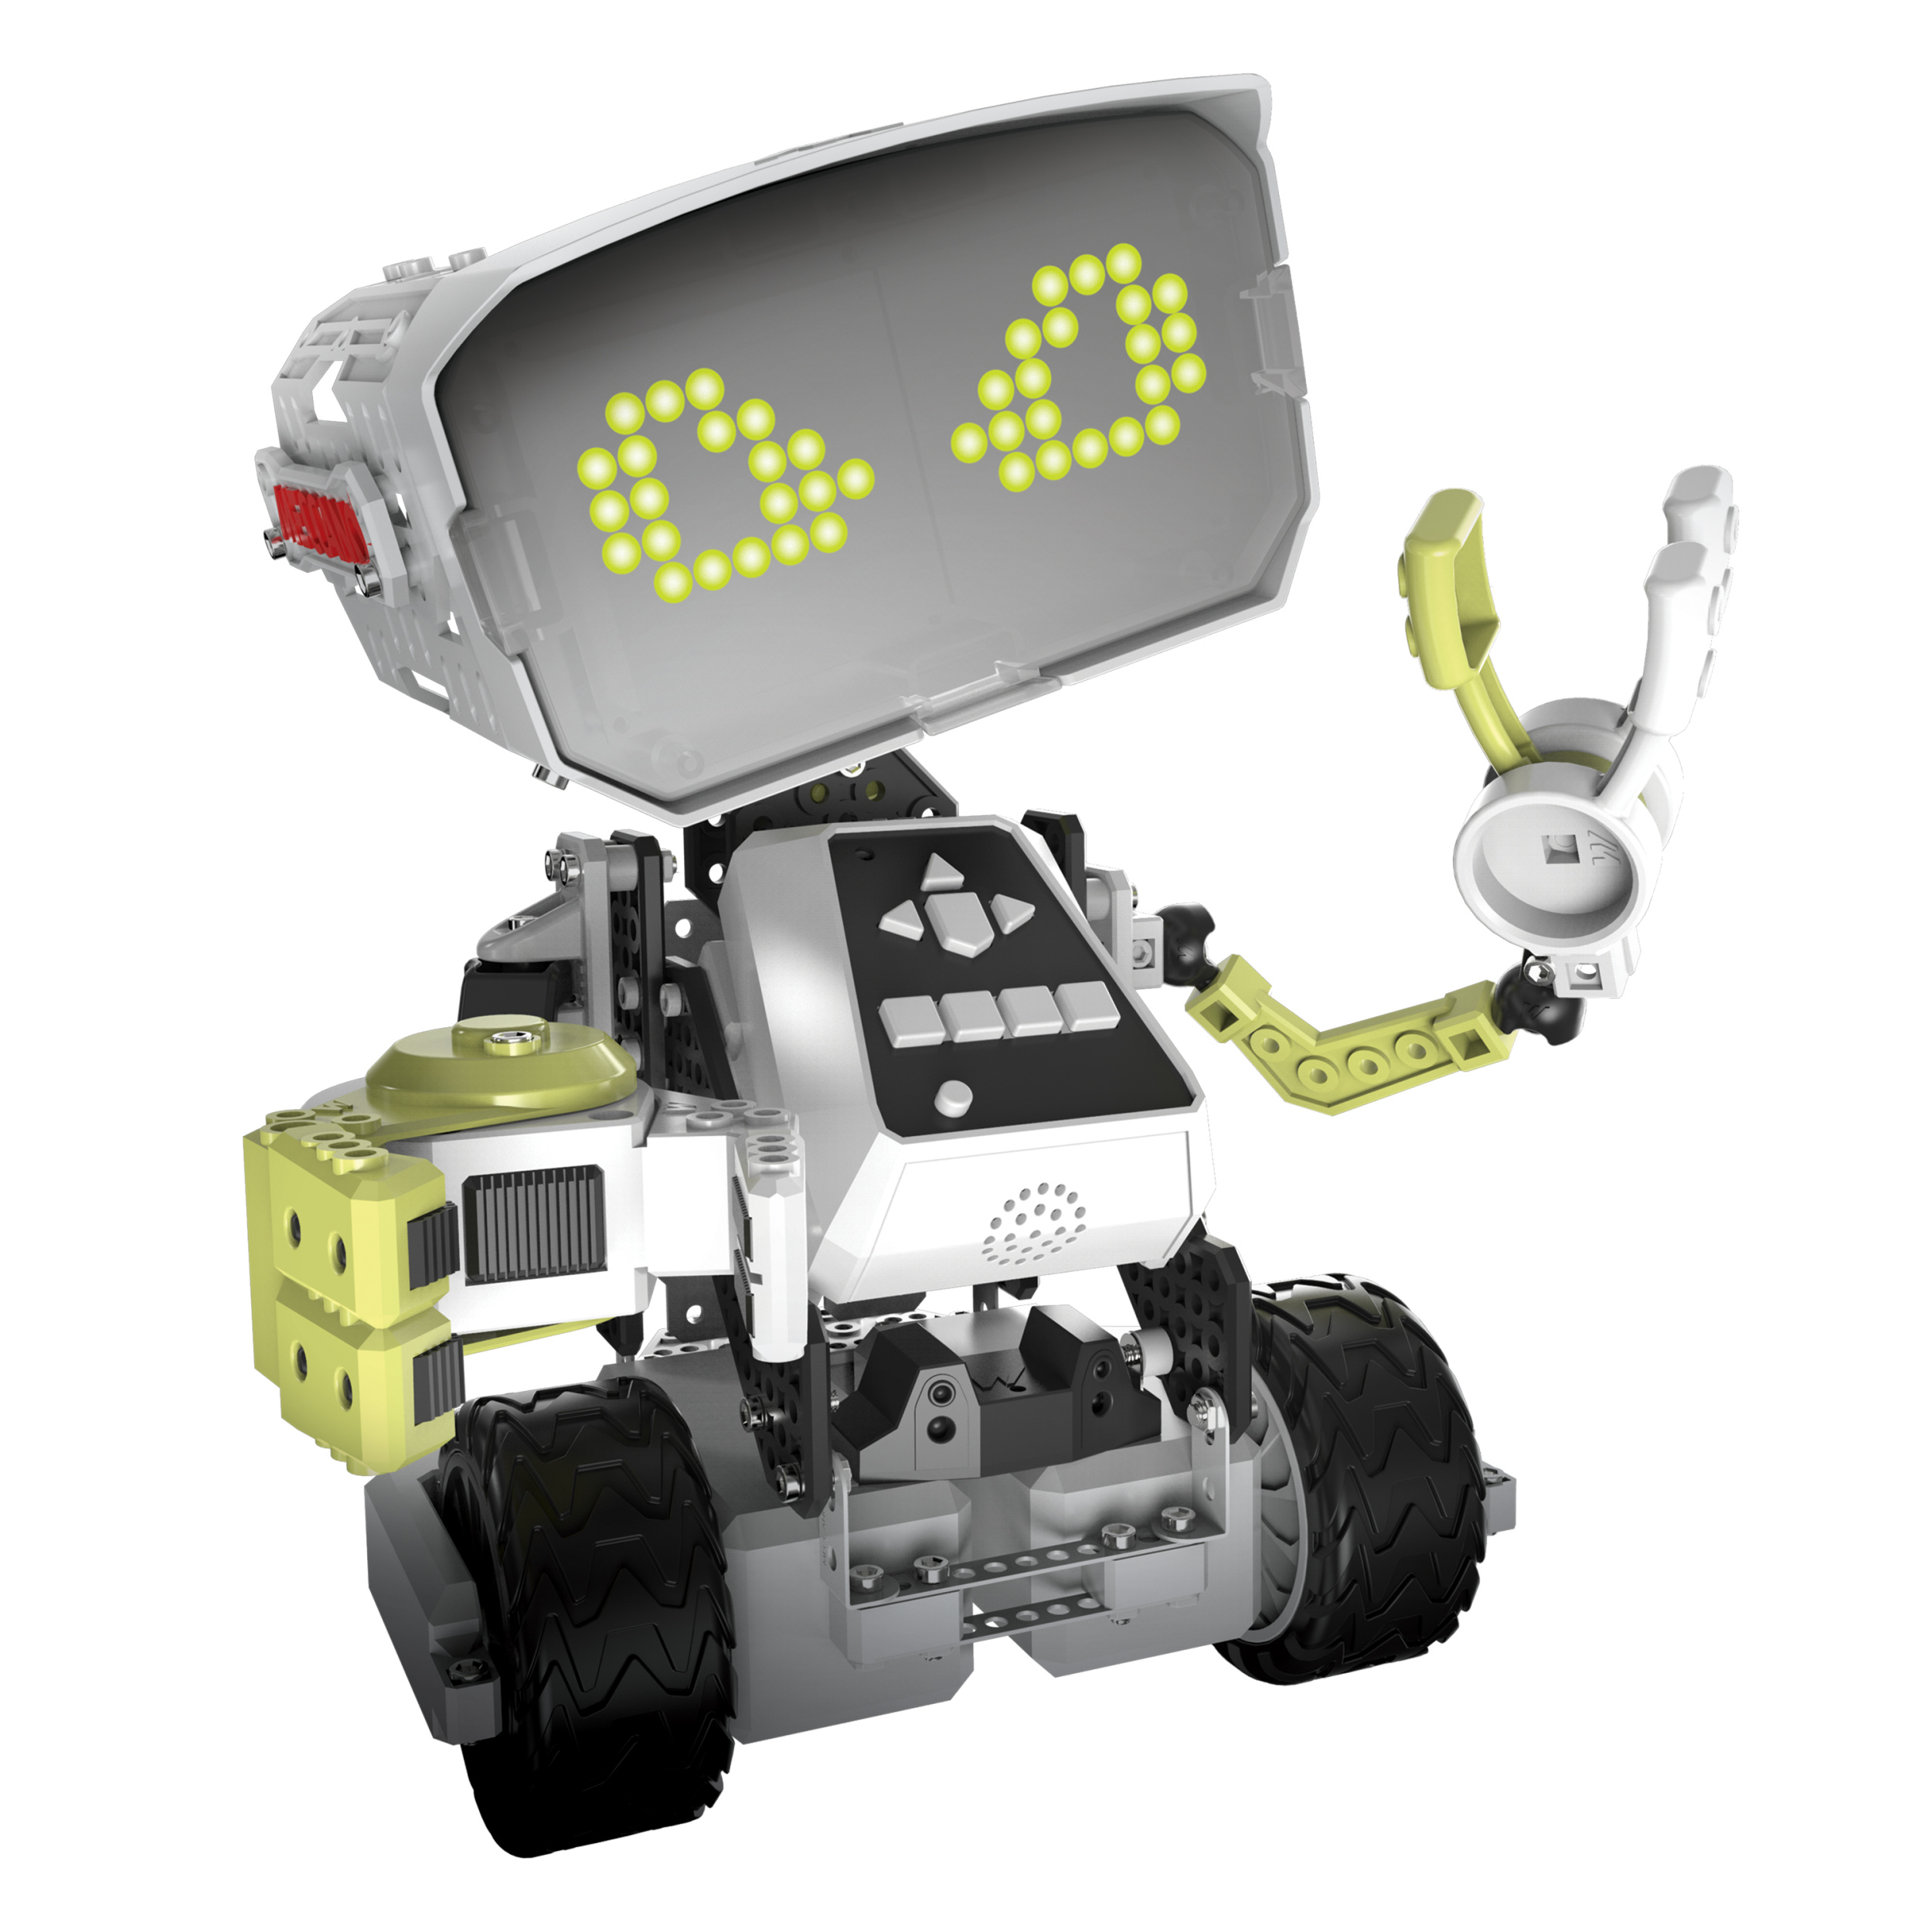 Meccano Erector M A X Robotic Interactive Toy with Artificial